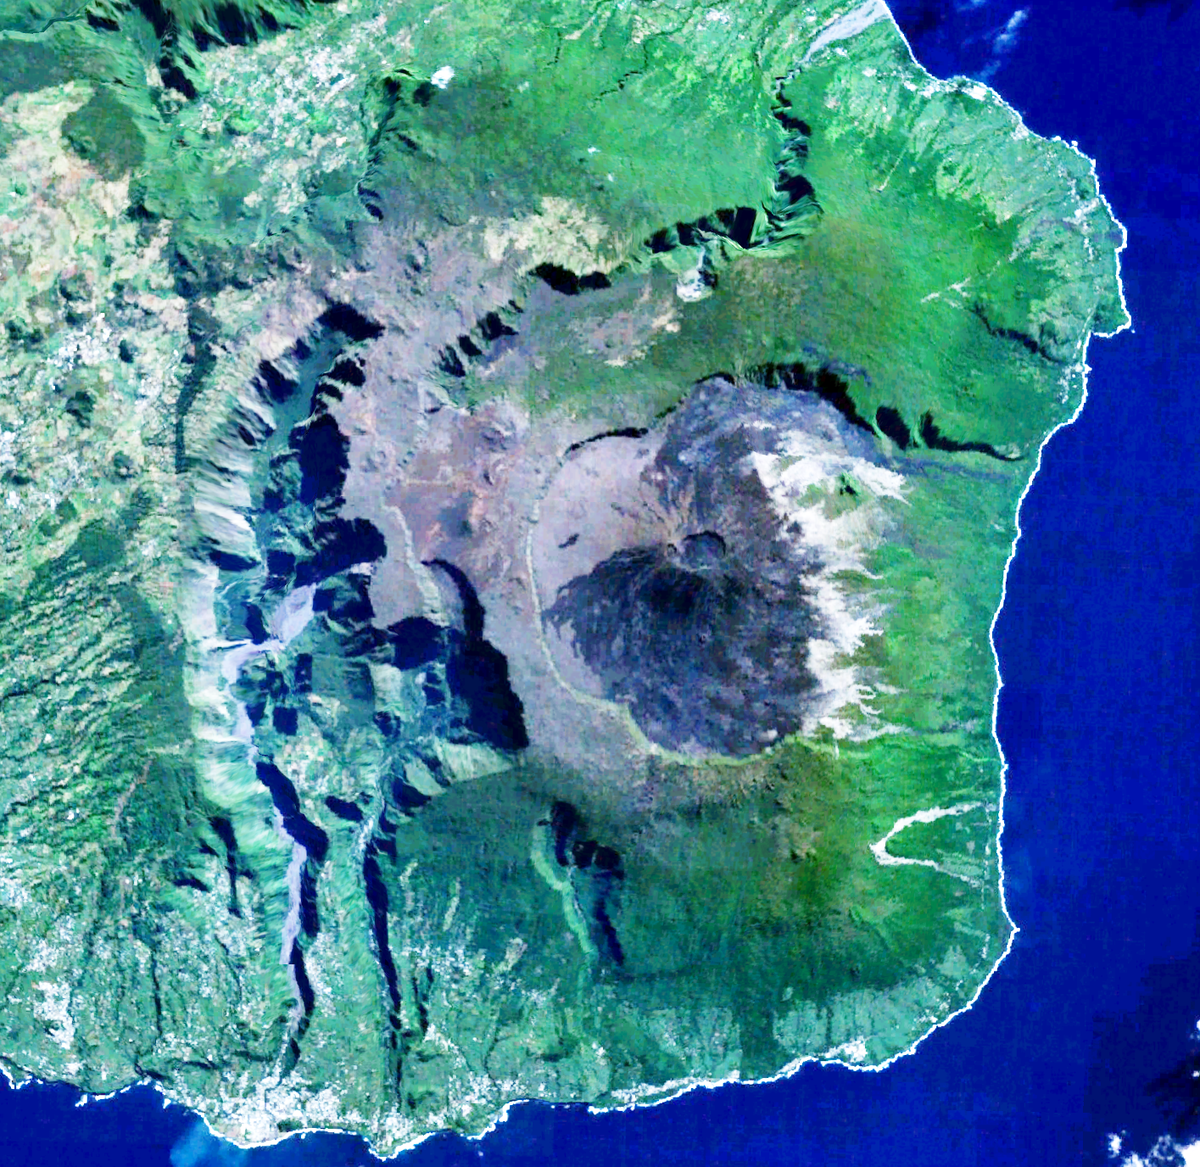 a report on piton de la fournaise and piton des neiges The piton des neiges is the highest point on the island and in the indian ocean at 10069 feet (3072 meters) above sea level, is west of piton de la fournaise volcano.